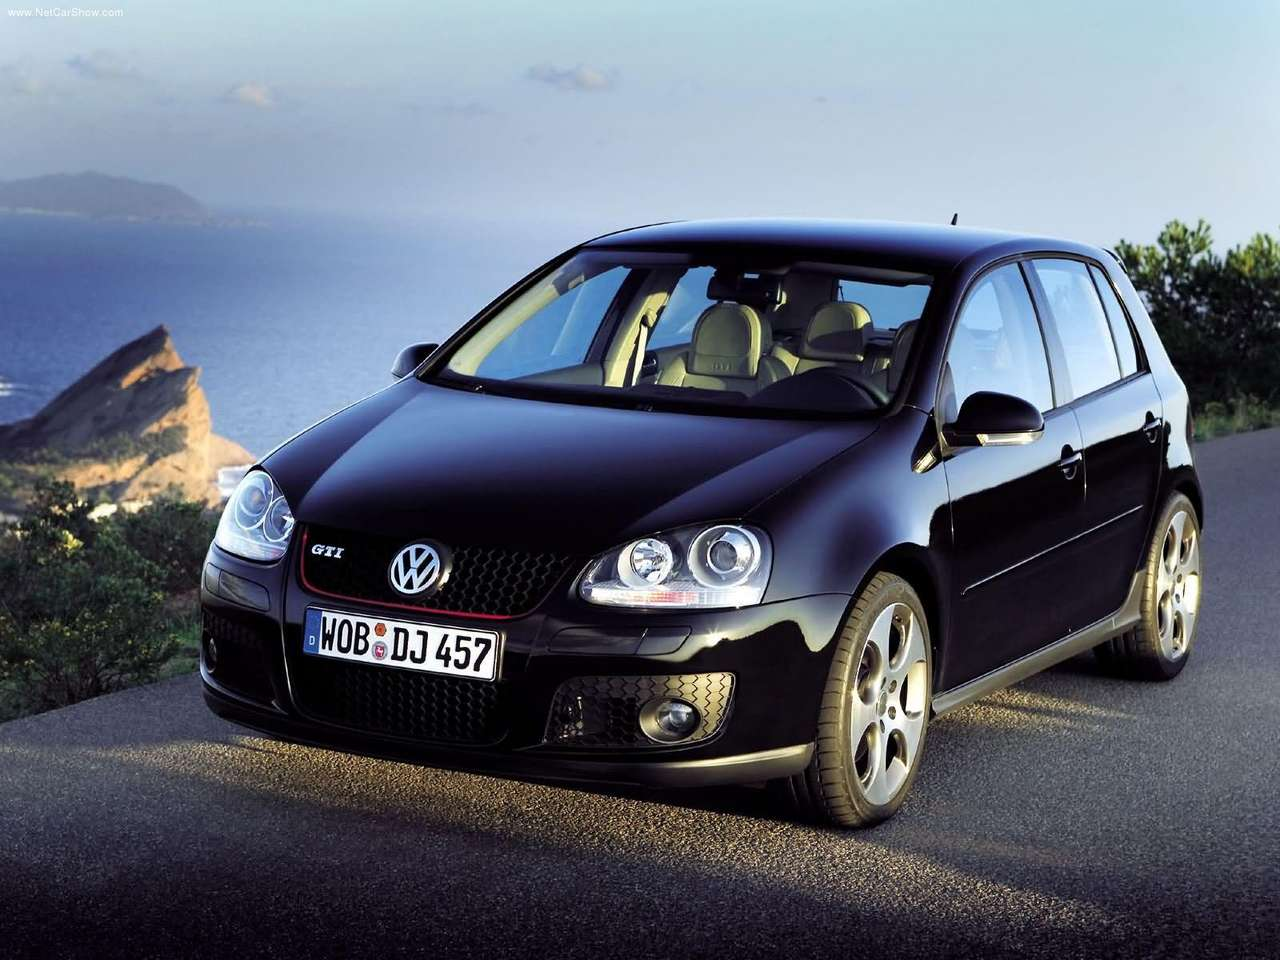 2004 volkswagen golf gti 5door volkswagen autos spain. Black Bedroom Furniture Sets. Home Design Ideas